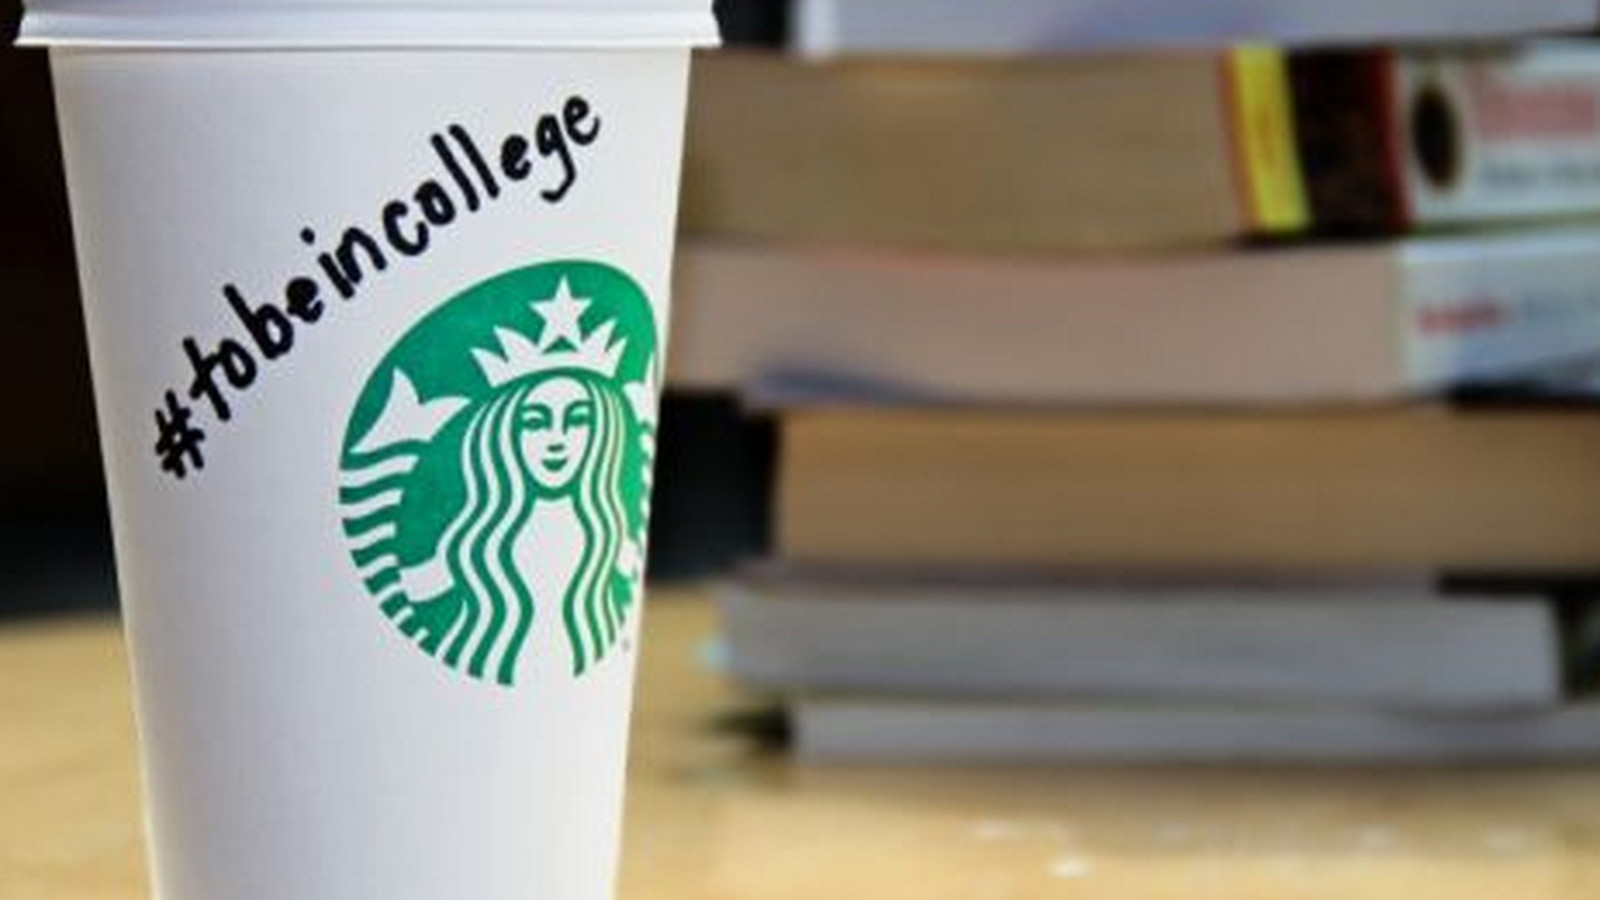 More Than 1,000 Starbucks Employees Have Gone Back to School - Eater Seattle